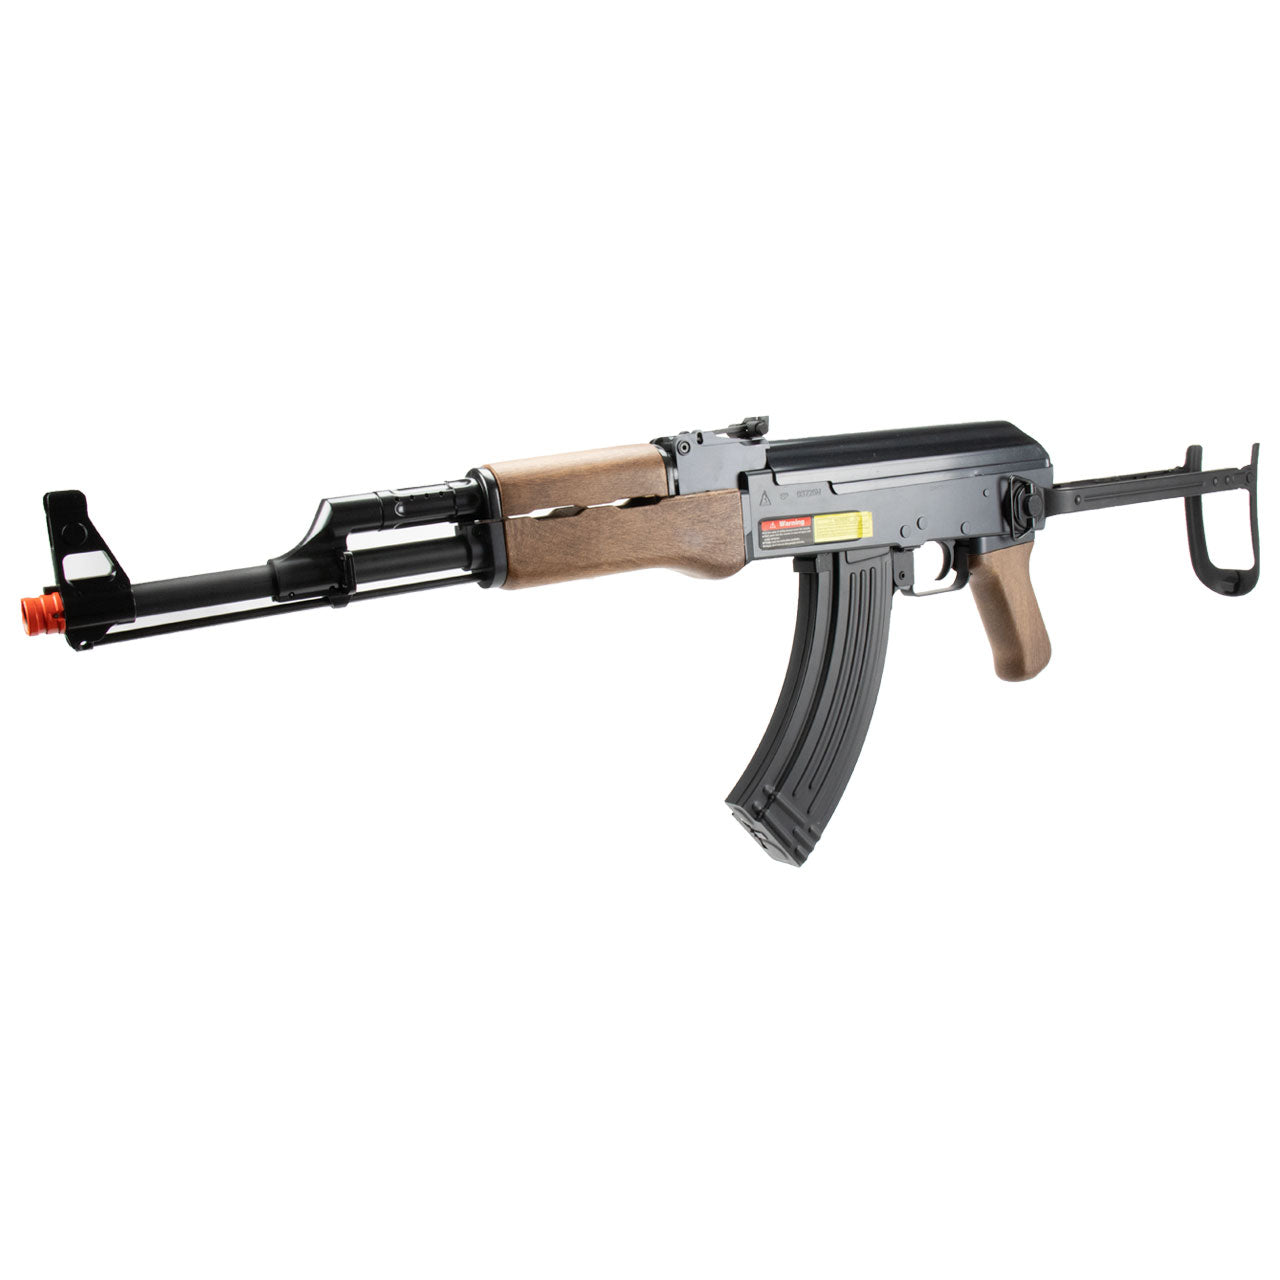 GE/ JG 6801 AK7-S Folding Stock AEG w/Battery & Charger